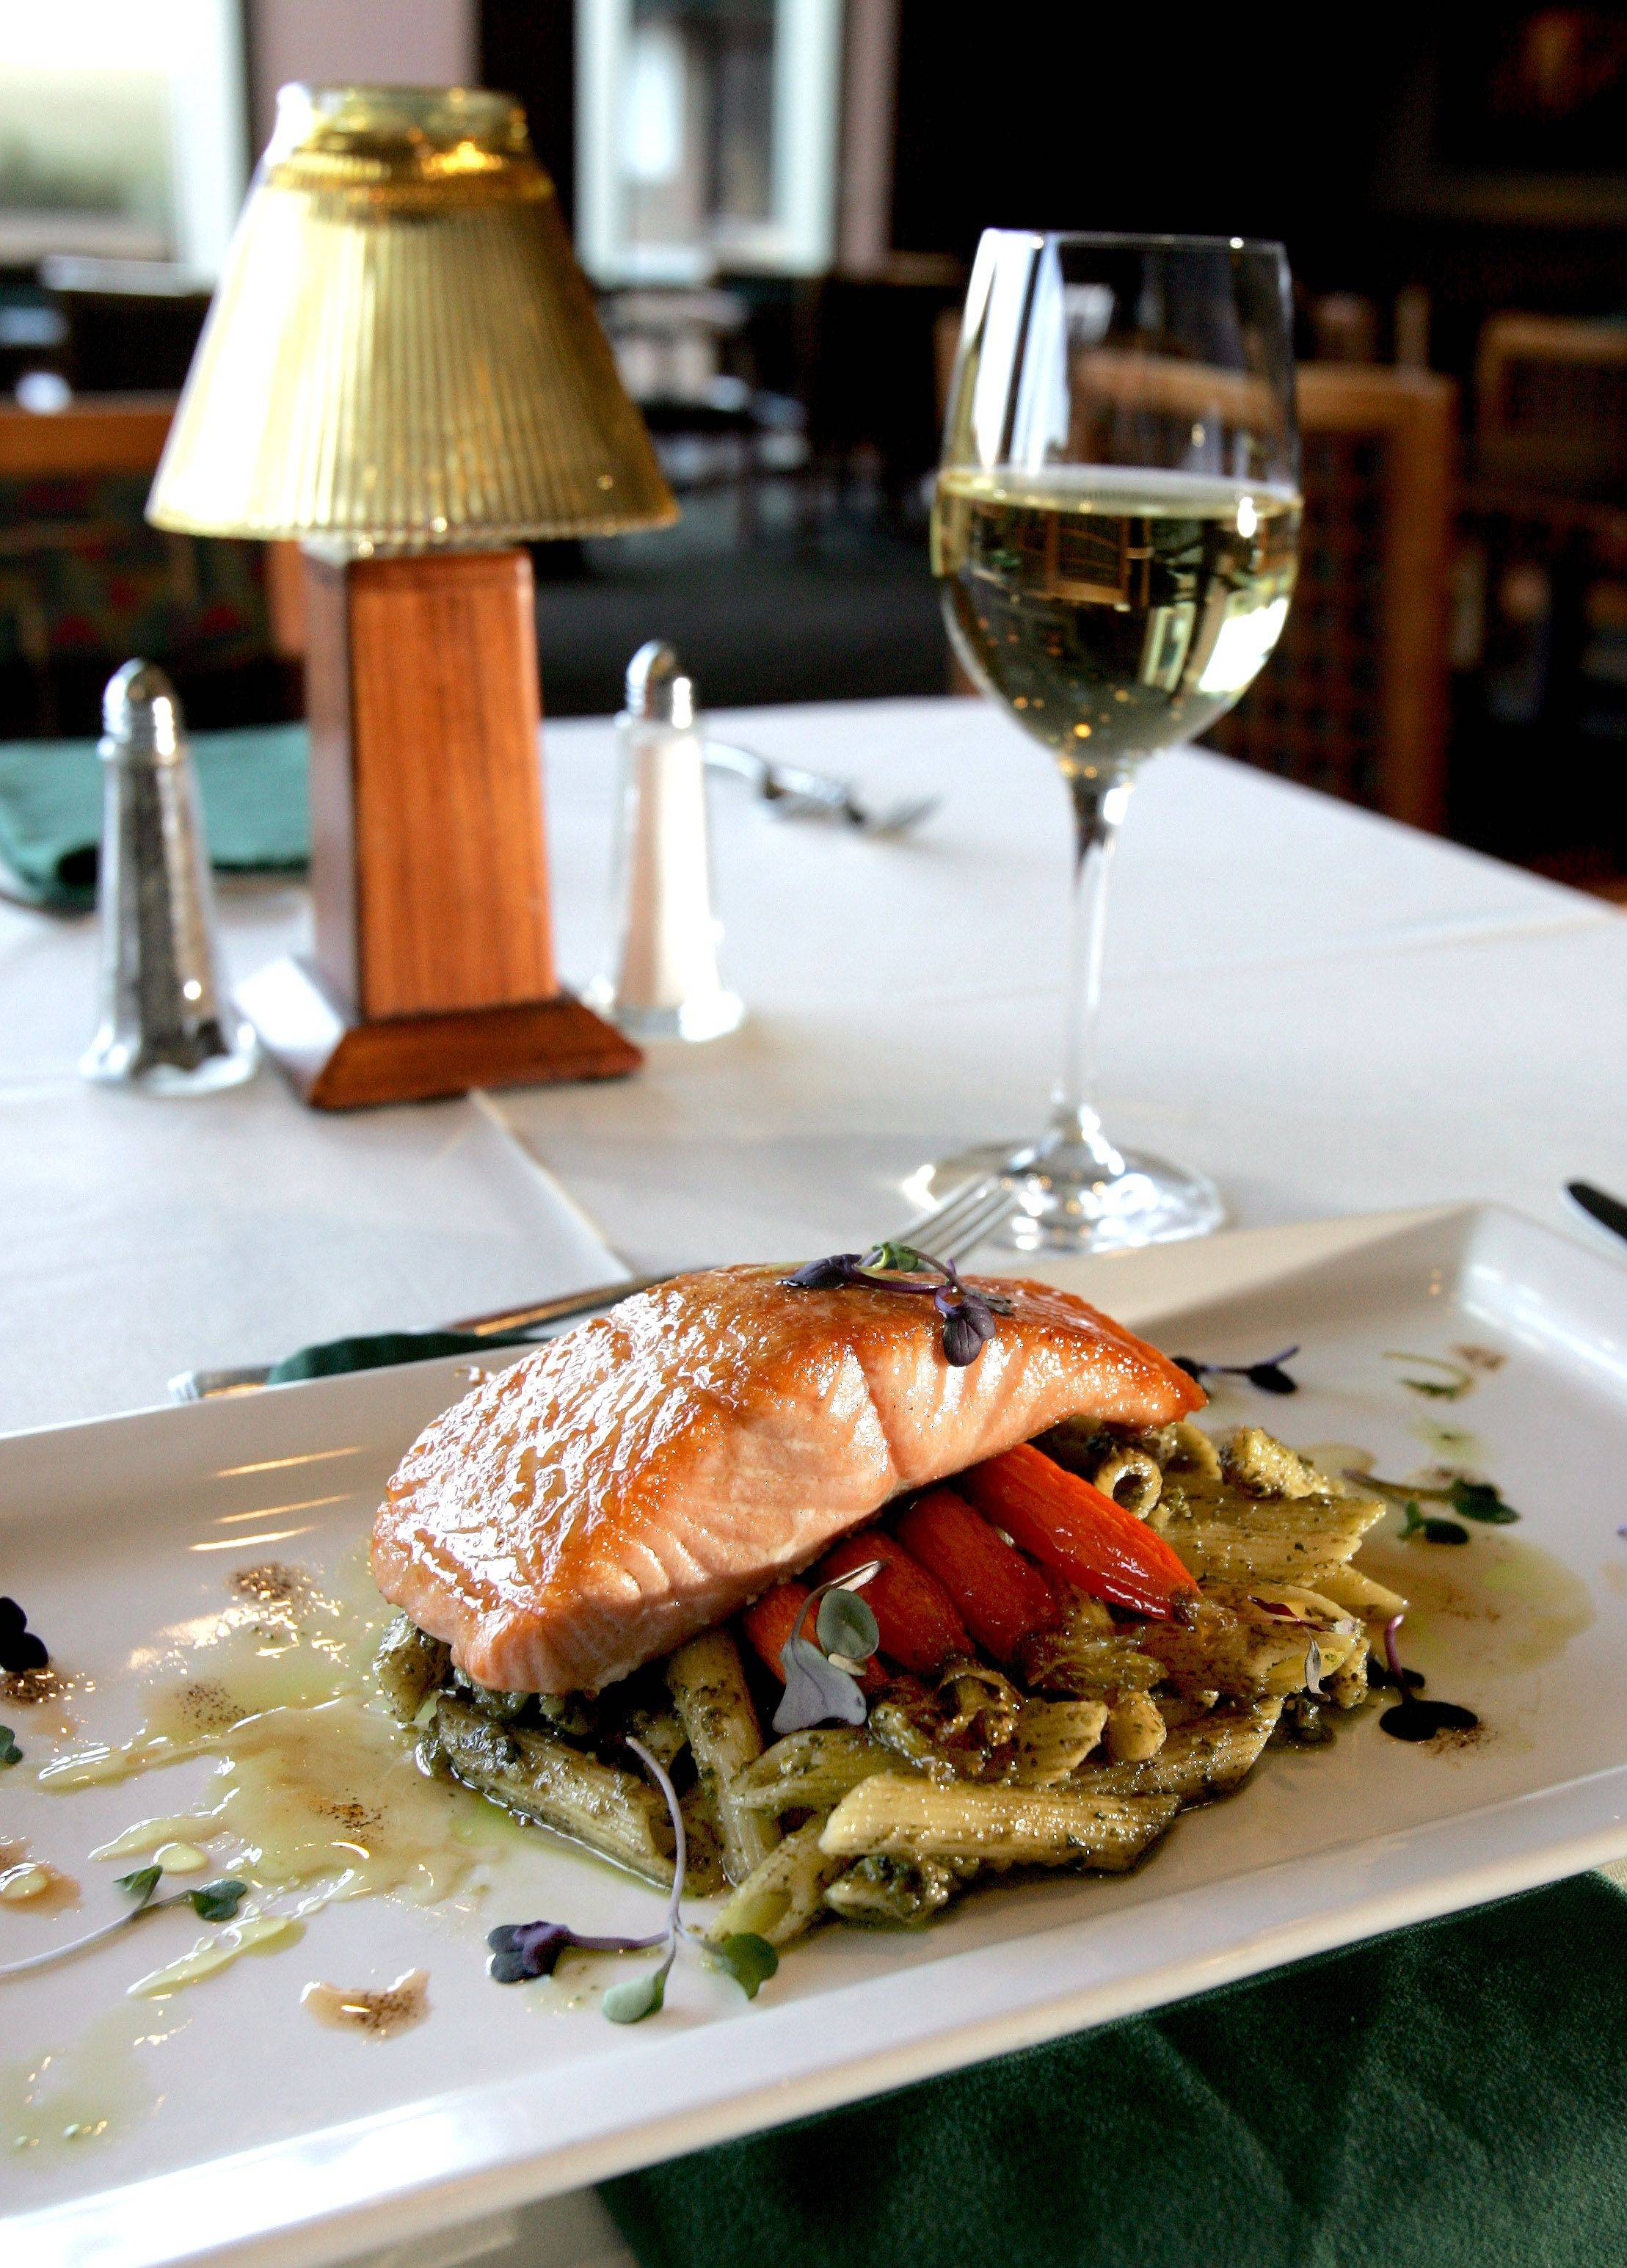 Seared Pacific salmon in lavender-limoncello syrup is one of three entree options on the Restaurant Week prix fixe menu at Prairie River restaurant at Eaglewood Resort and Spa in Itasca.